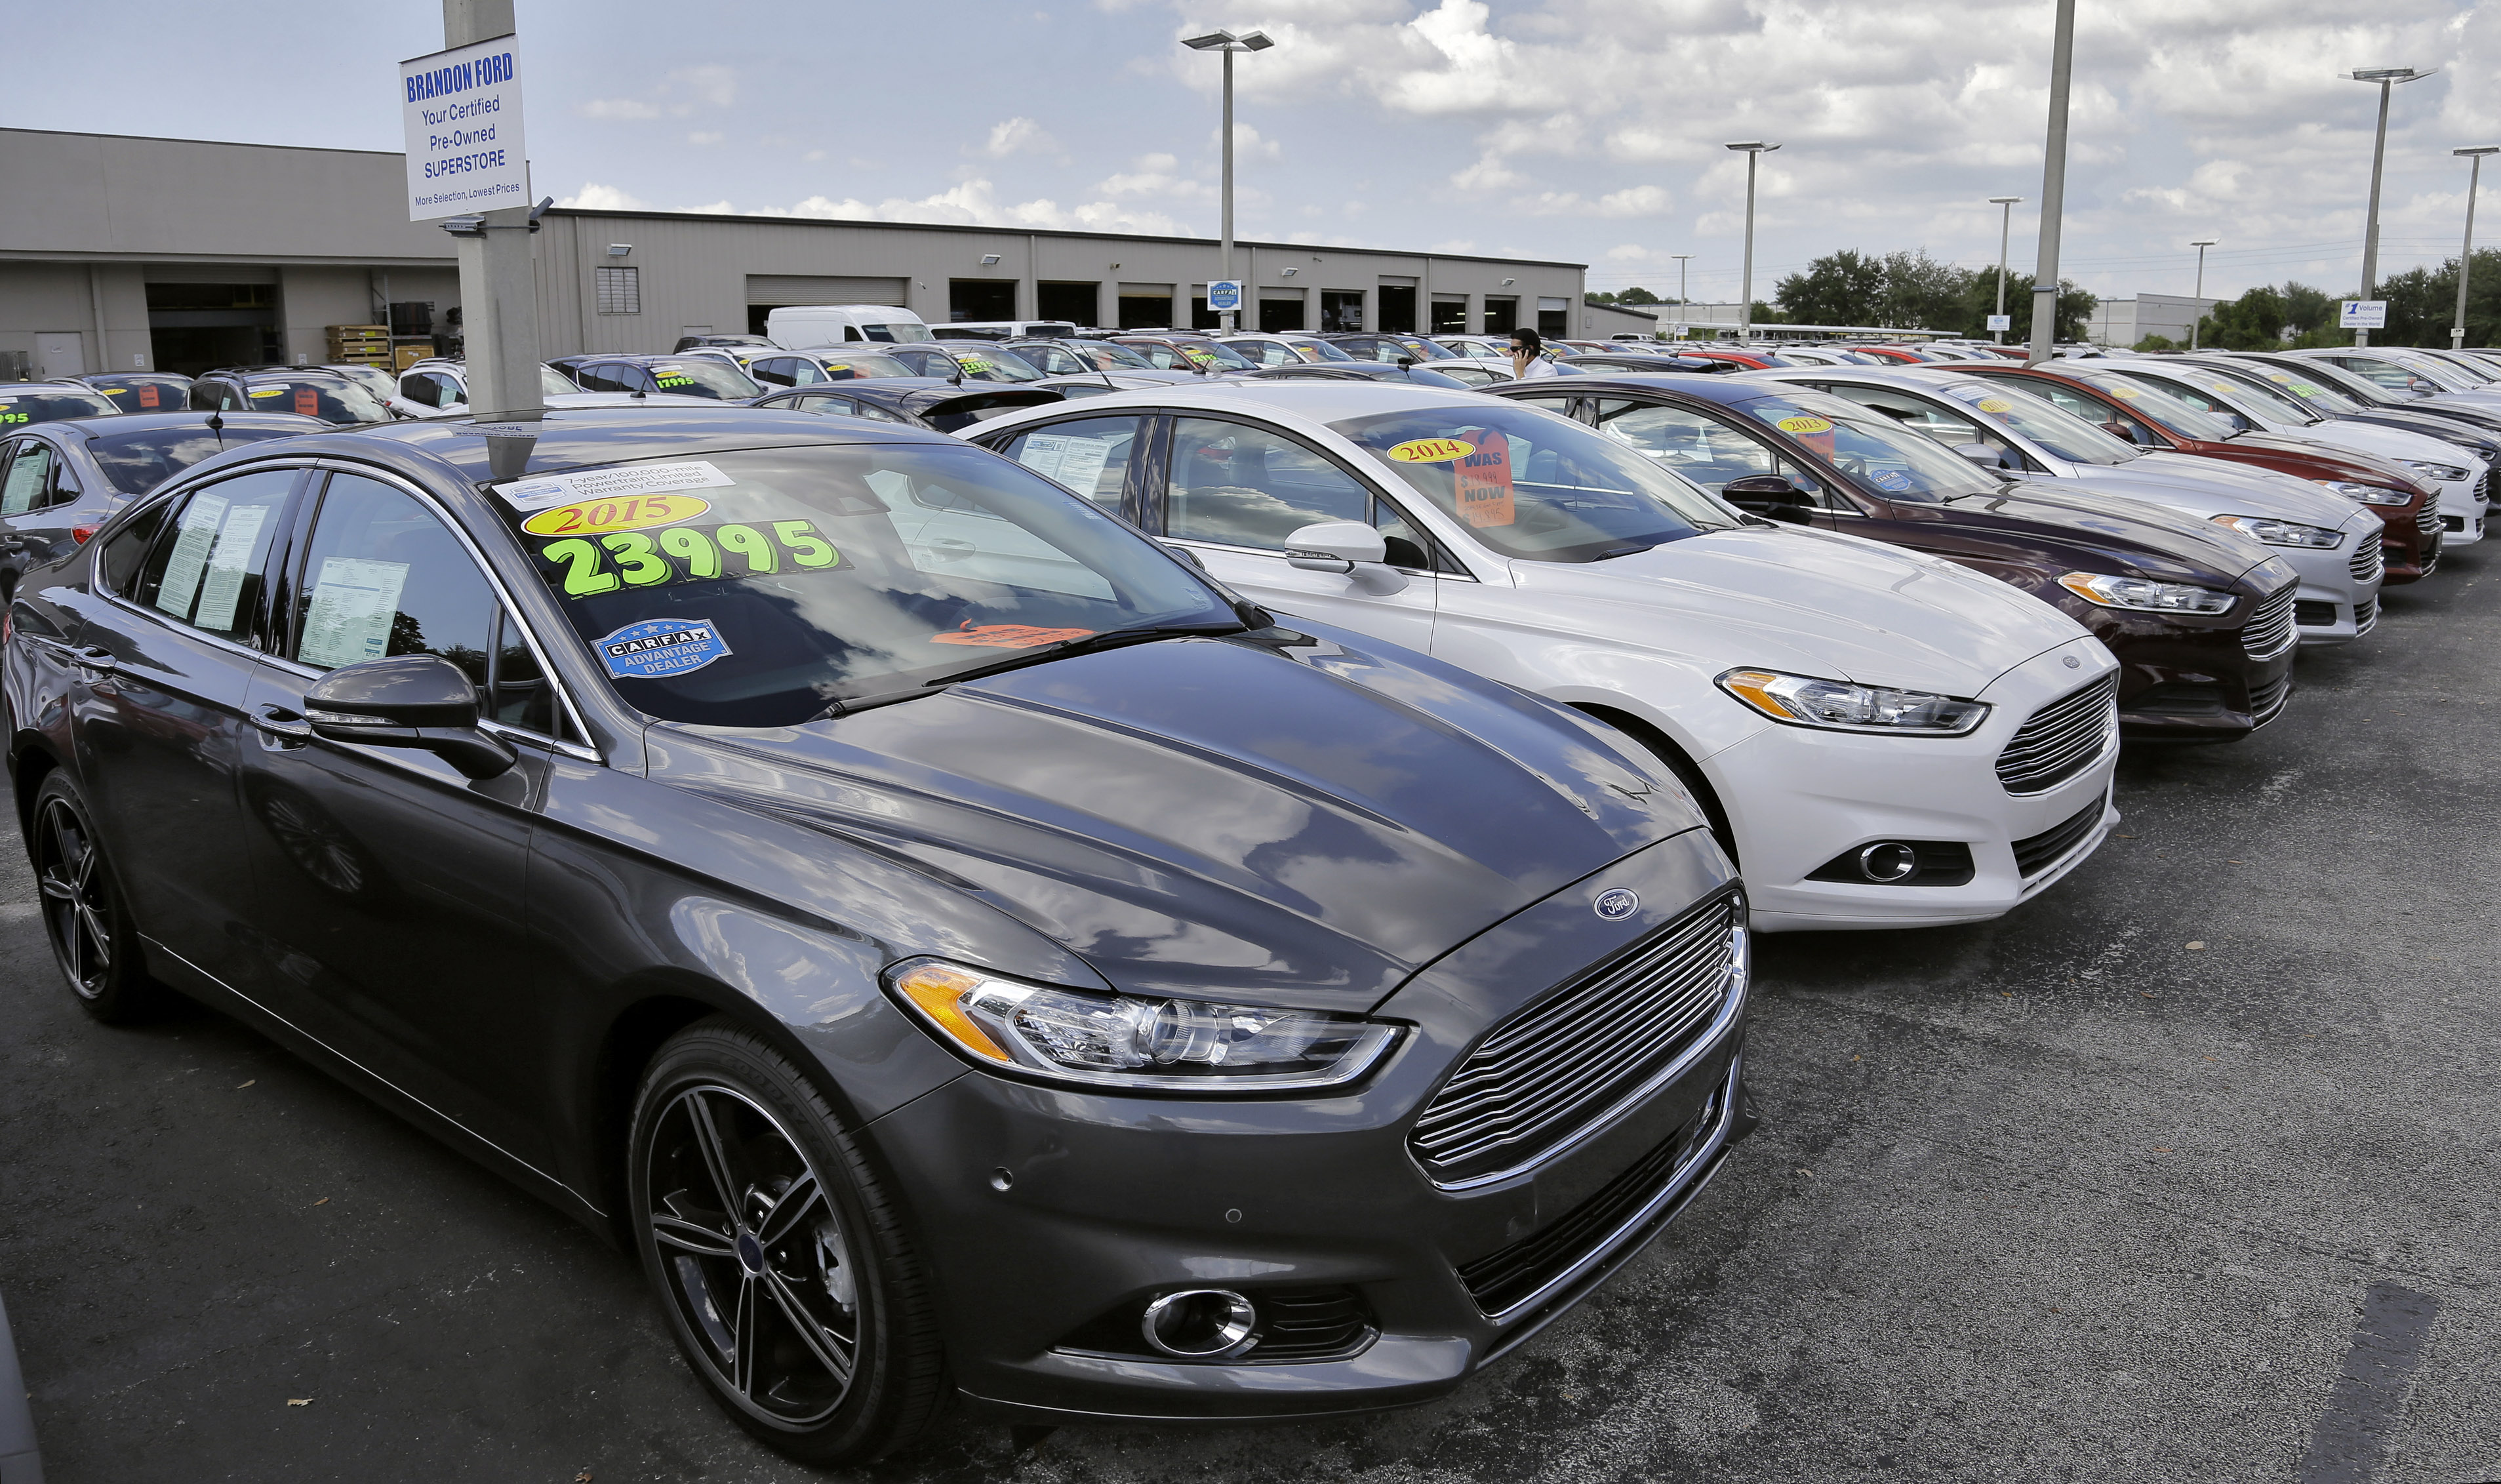 What To Know Before Buying A Used Car | NPR Illinois